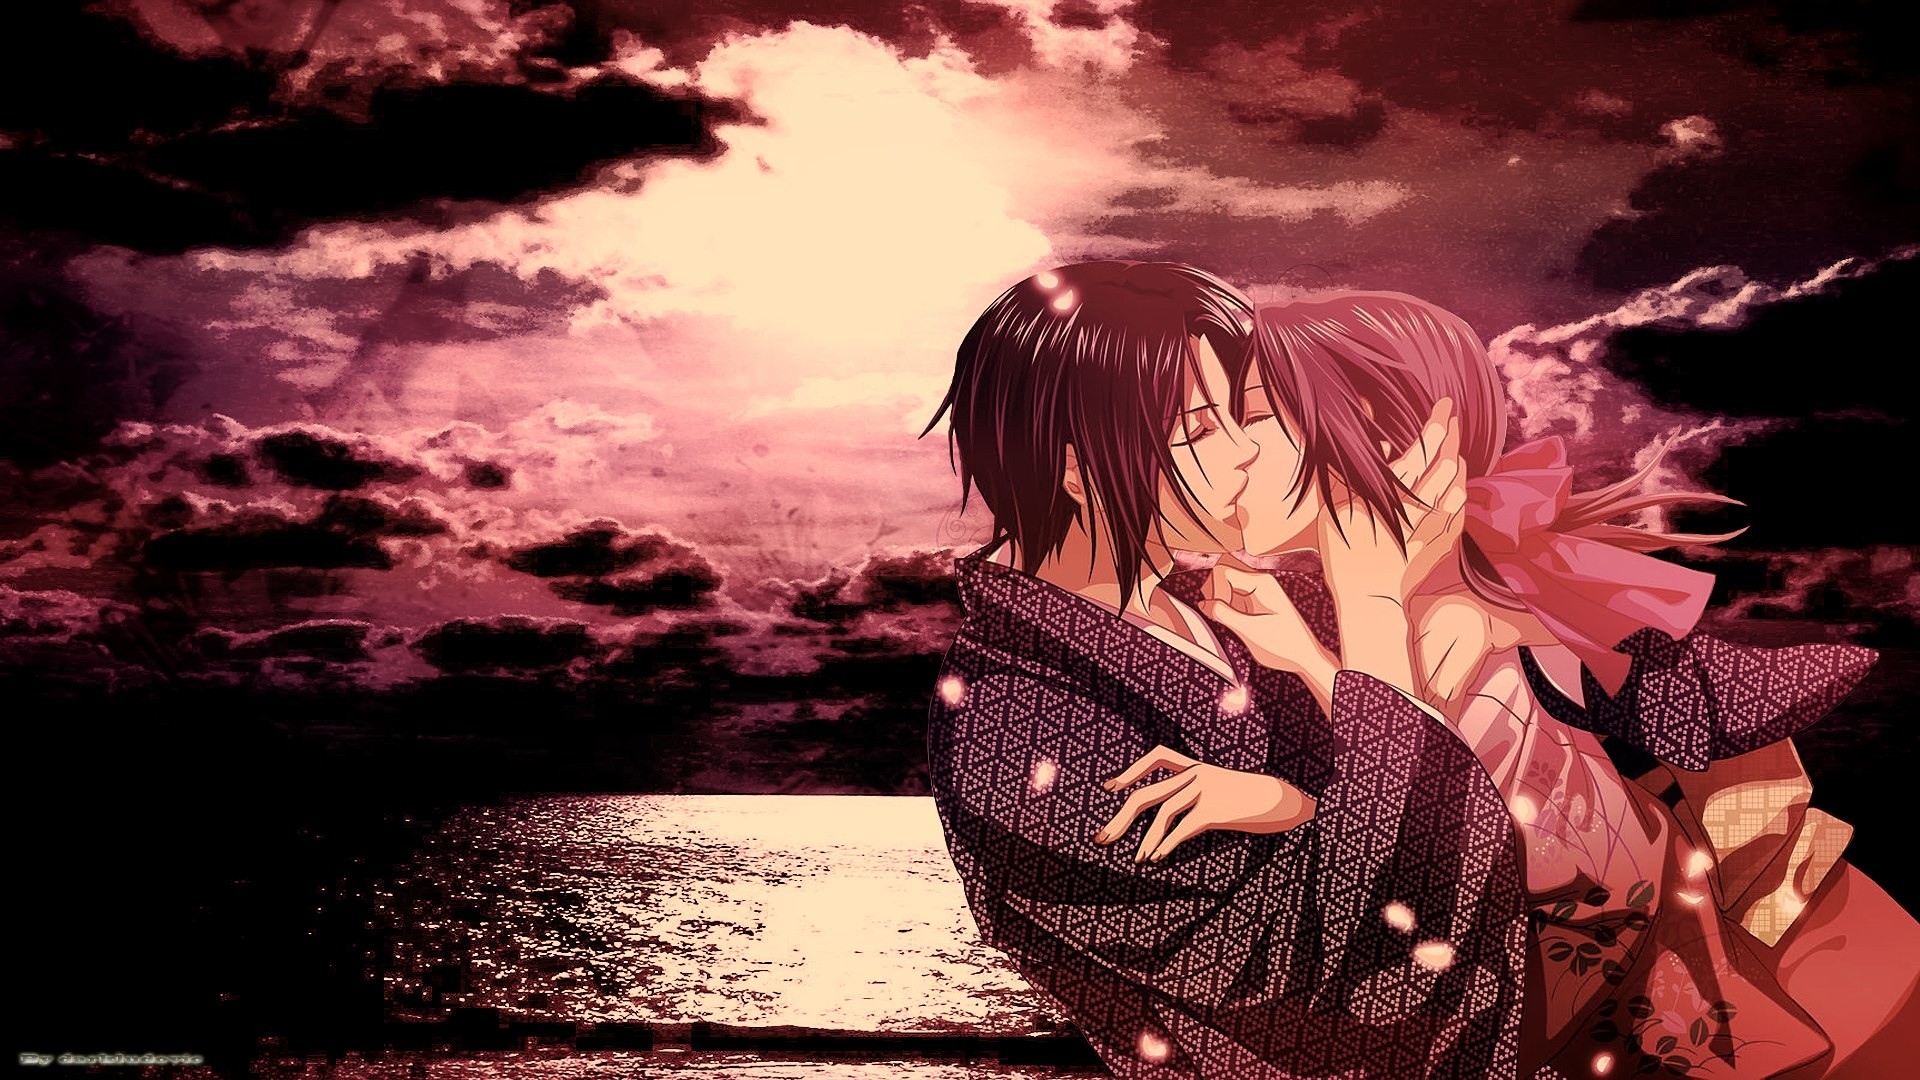 Res: 1920x1080, Hakuouki wallpaper by darkludovic Hakuouki wallpaper by darkludovic